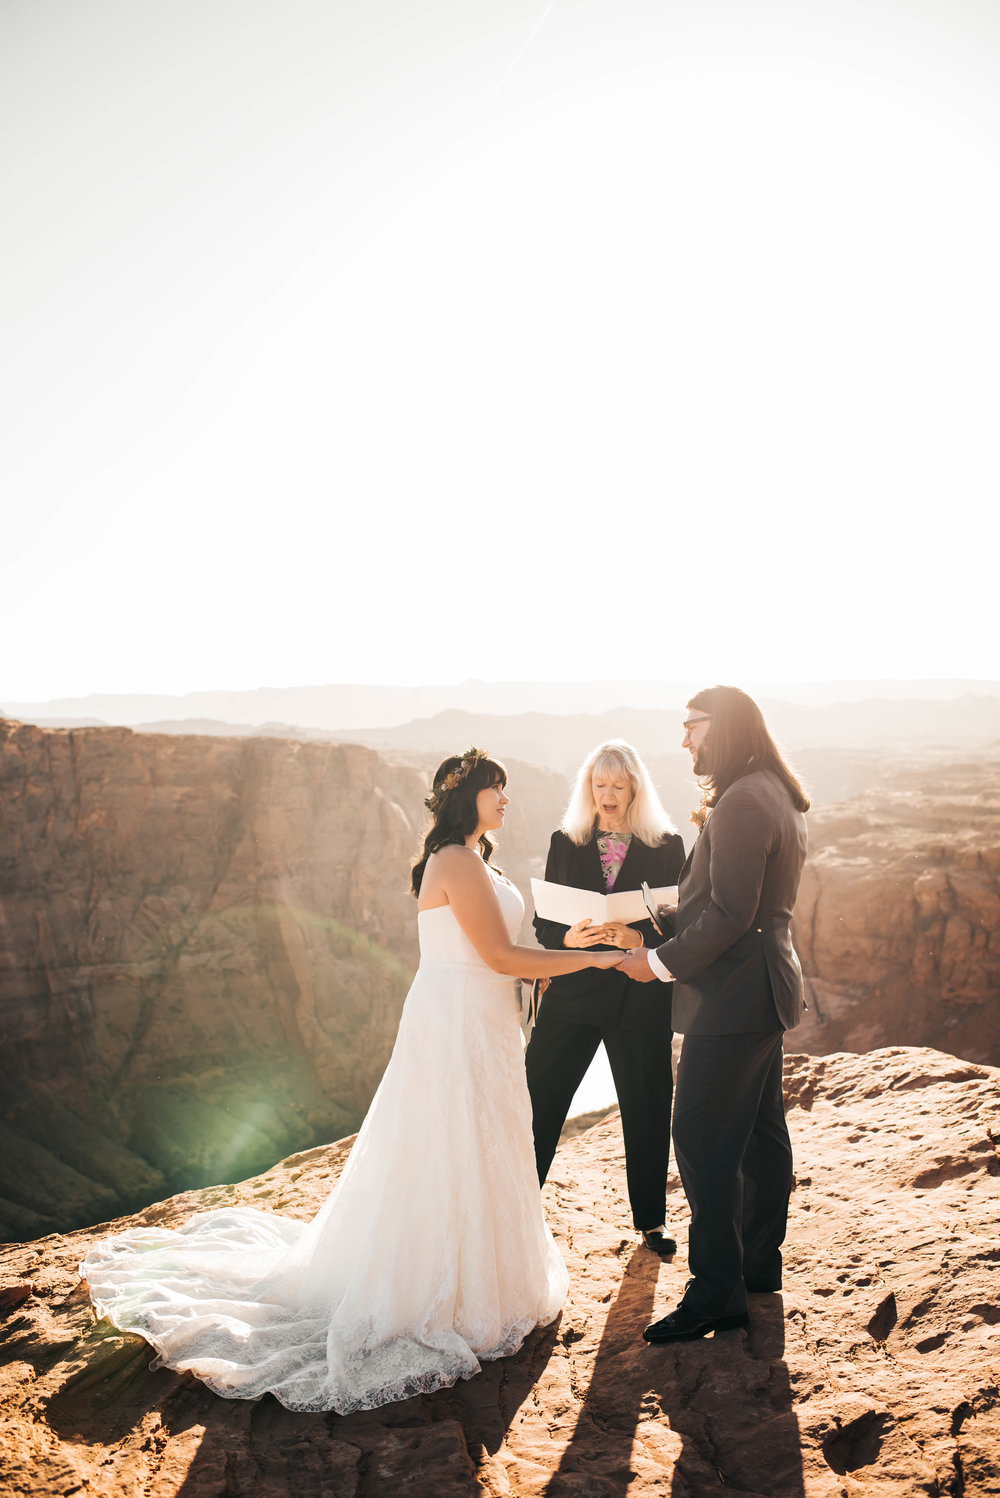 oregon arizon california utah georgia nontraditional adventure wedding elopement photographer-248.jpg